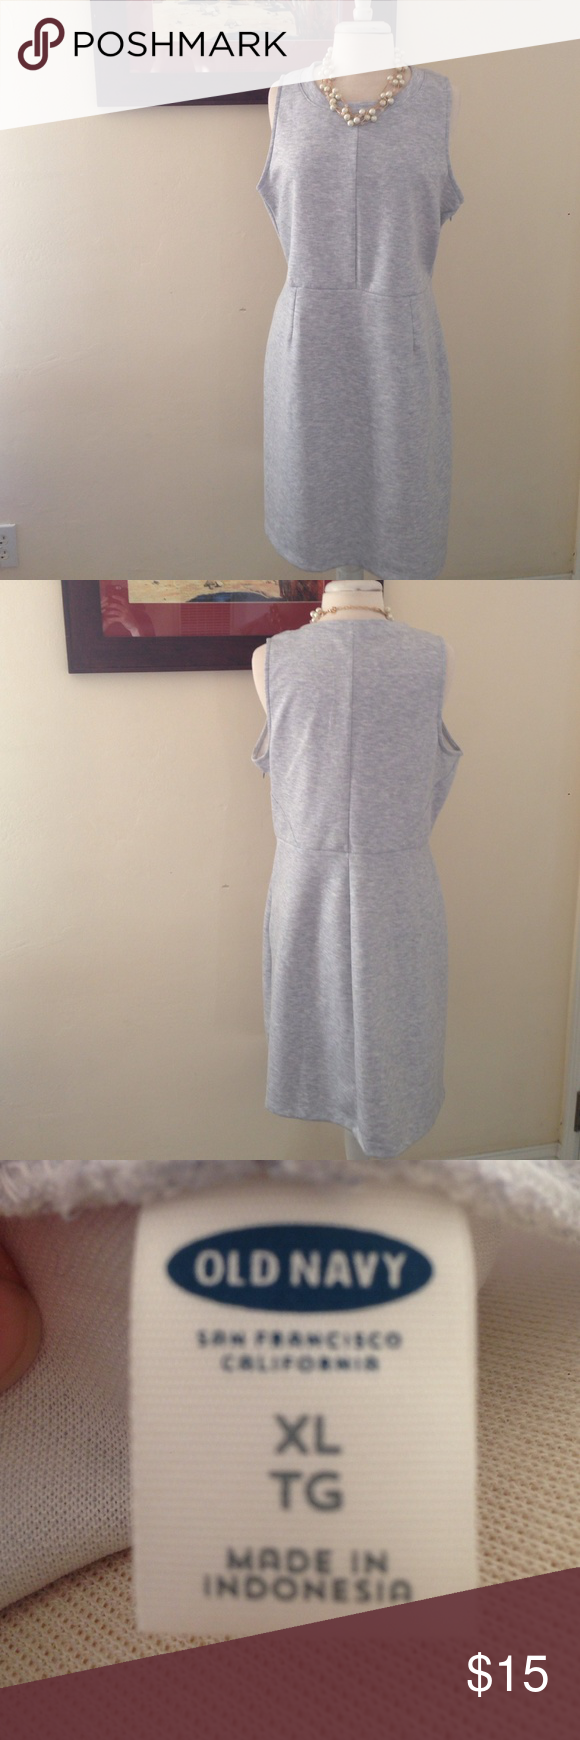 """Gray Dress Old Navy, gray sleeveless dress. Size XL. Length: 36"""". Material: 84% polyester, 16% rayon. Machine wash cold. Pre-loved, beautiful condition, slight wear on inside seam (not visible when worn). Old Navy Dresses Midi"""